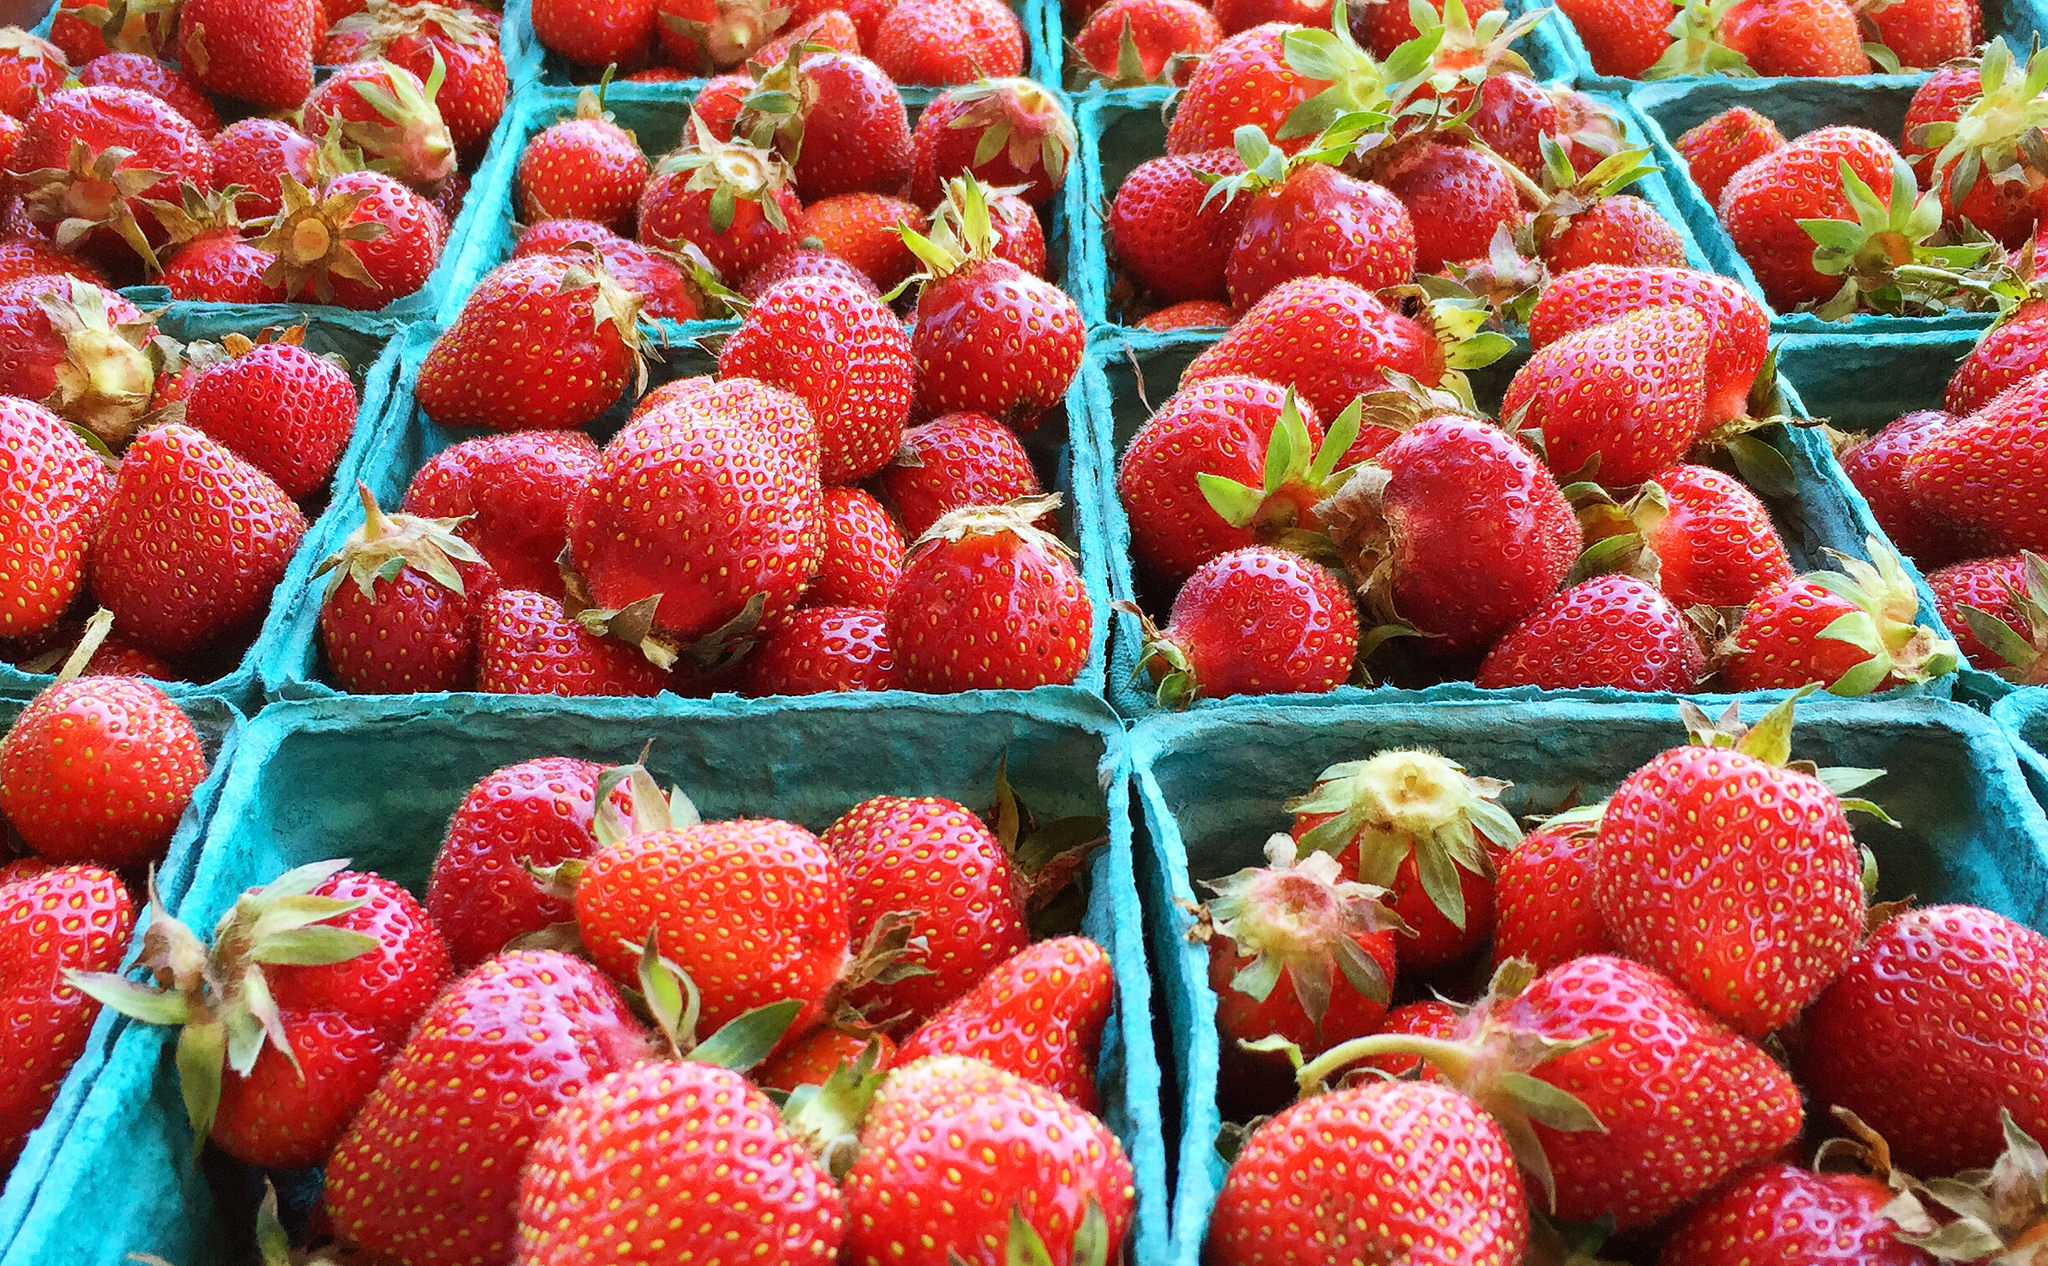 Strawberries, F Delventhal May 23, 2015